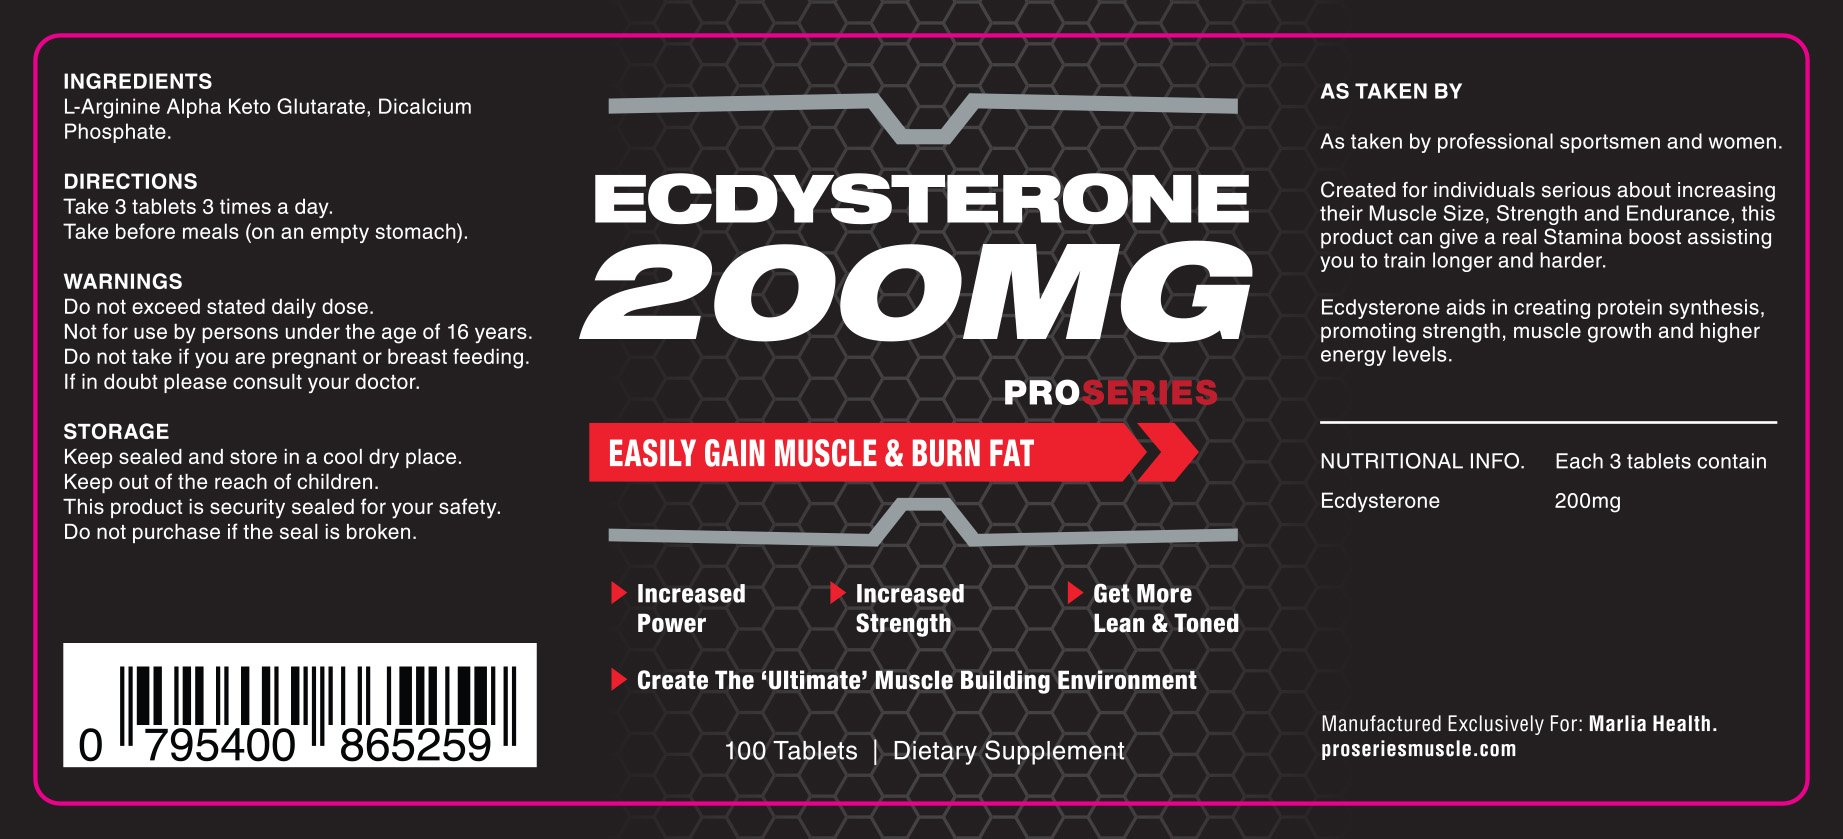 ProSeries Ecdysterone 200MG Muscle Gain and Growth Supplement - 100 Tablets - Buy Online in UAE